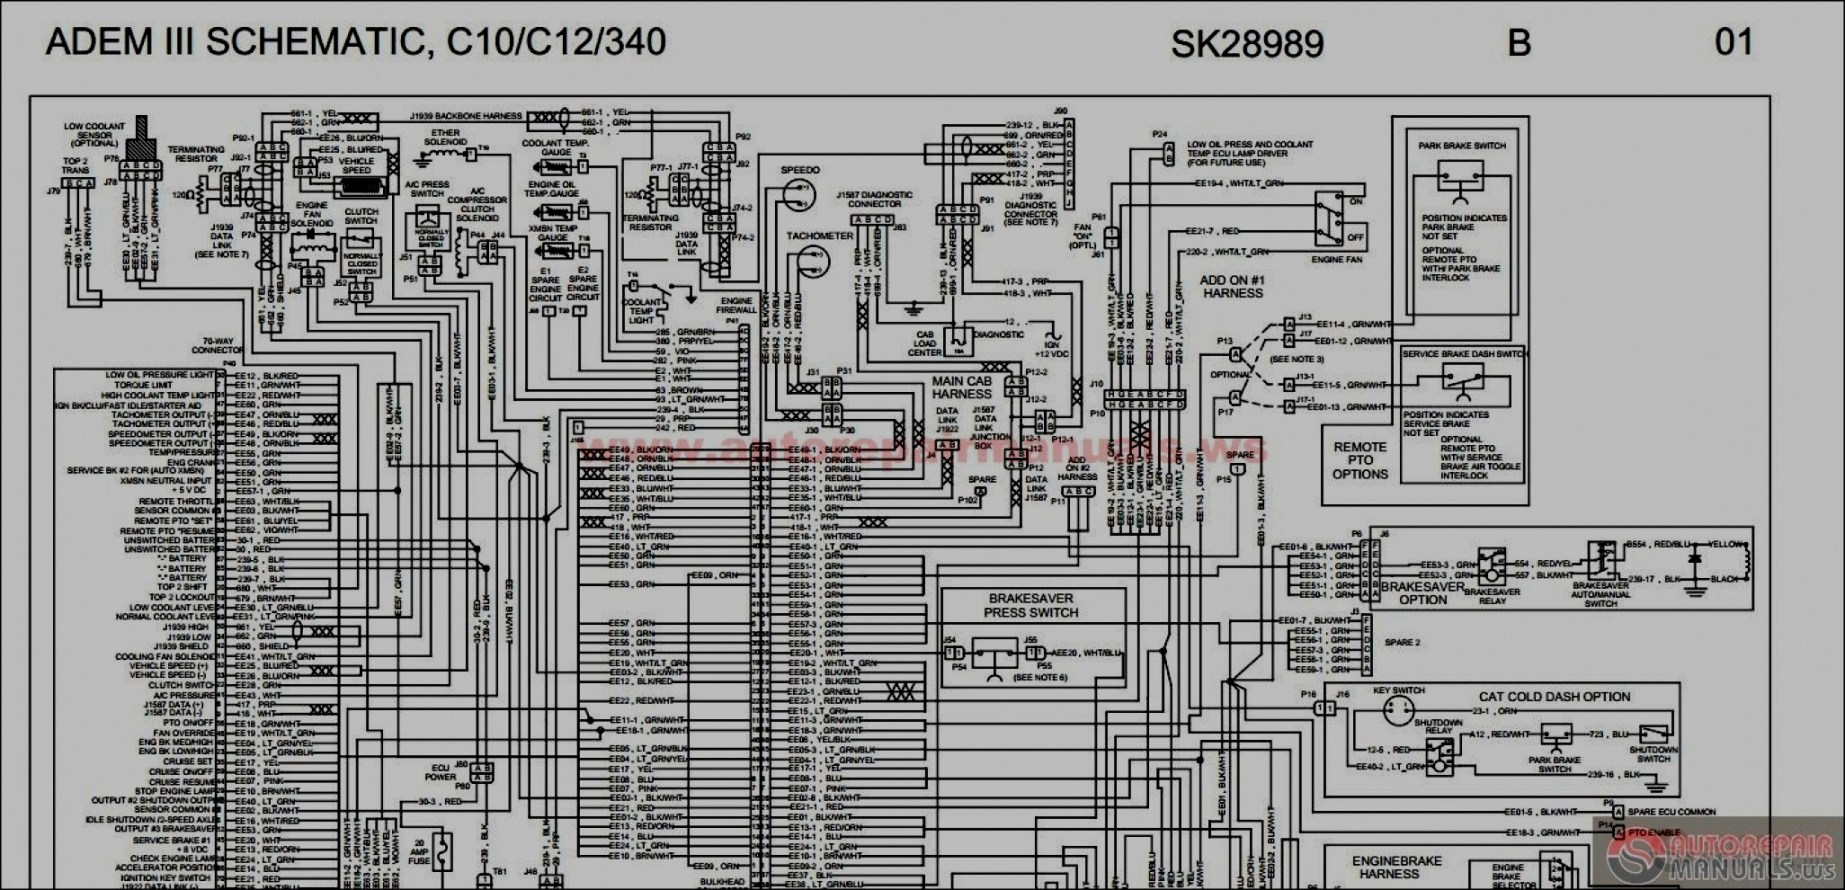 2004 Peterbilt 379 Wiring Diagram - Automatic Washing Machine Wiring Diagram  - hinoengine.yenpancane.jeanjaures37.fr | 2004 379 Peterbilt Wiring Diagram |  | Wiring Diagram Resource